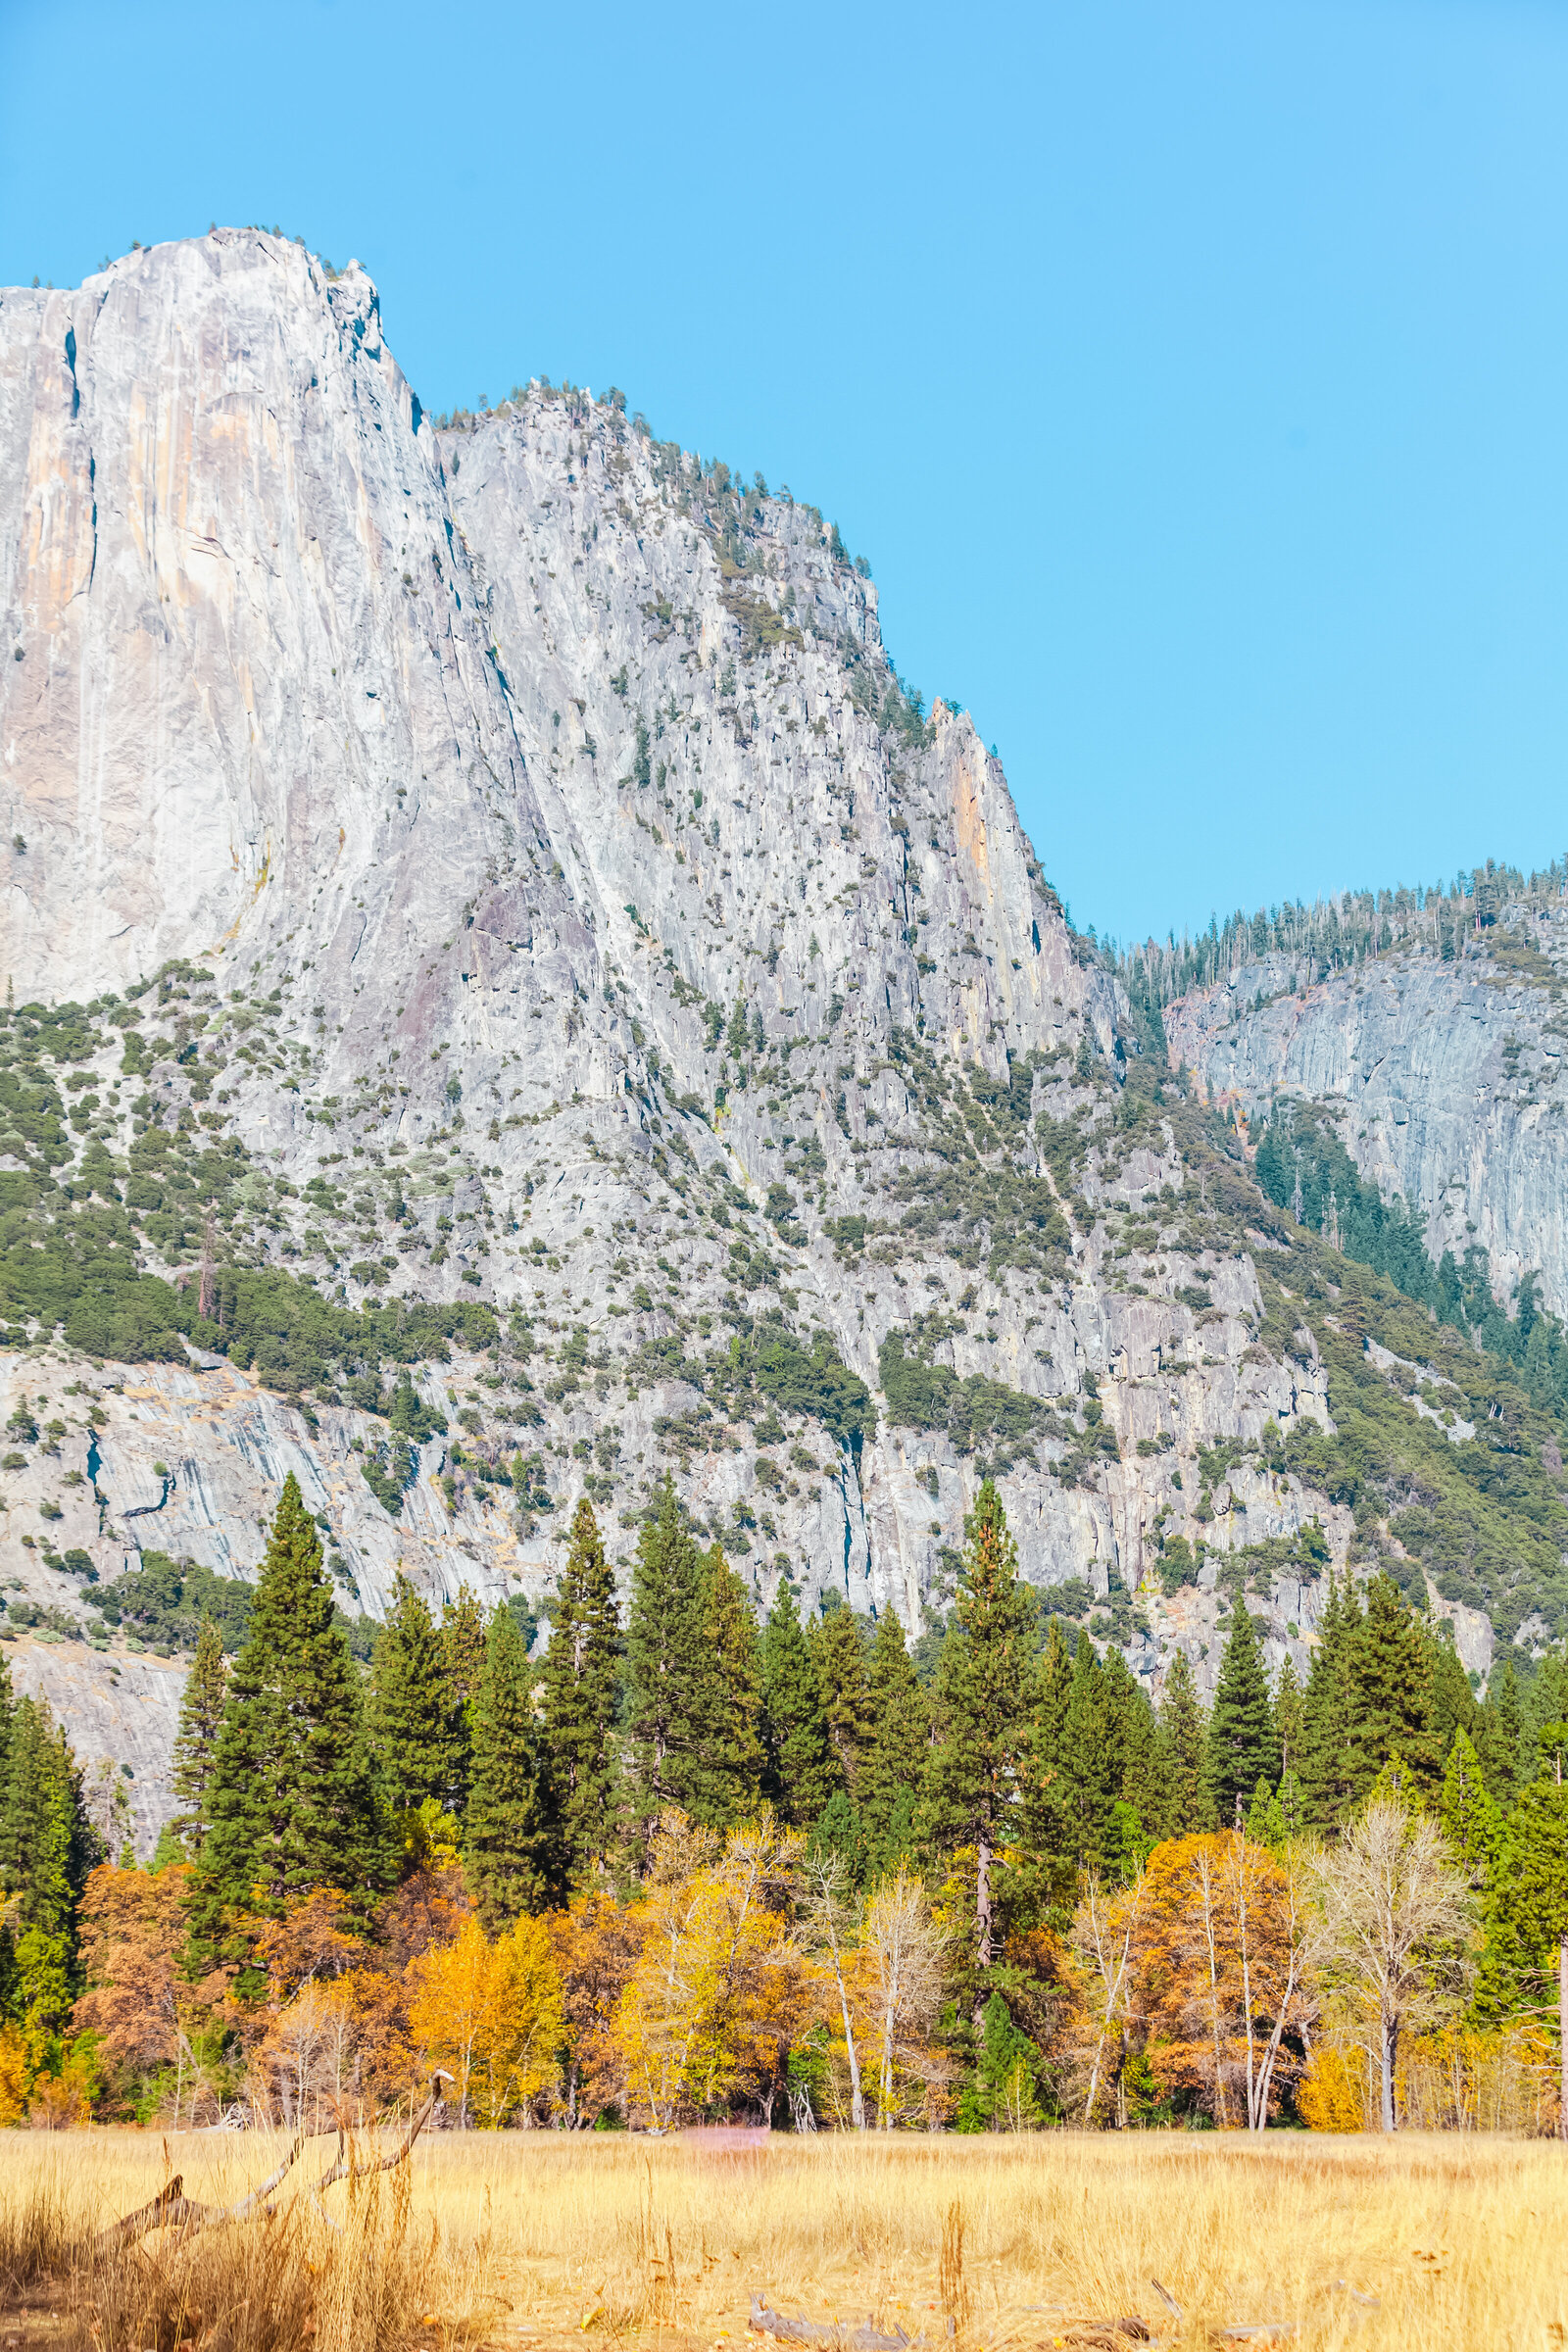 020-KBP-Yosemite-National-Park-El-Capitan-